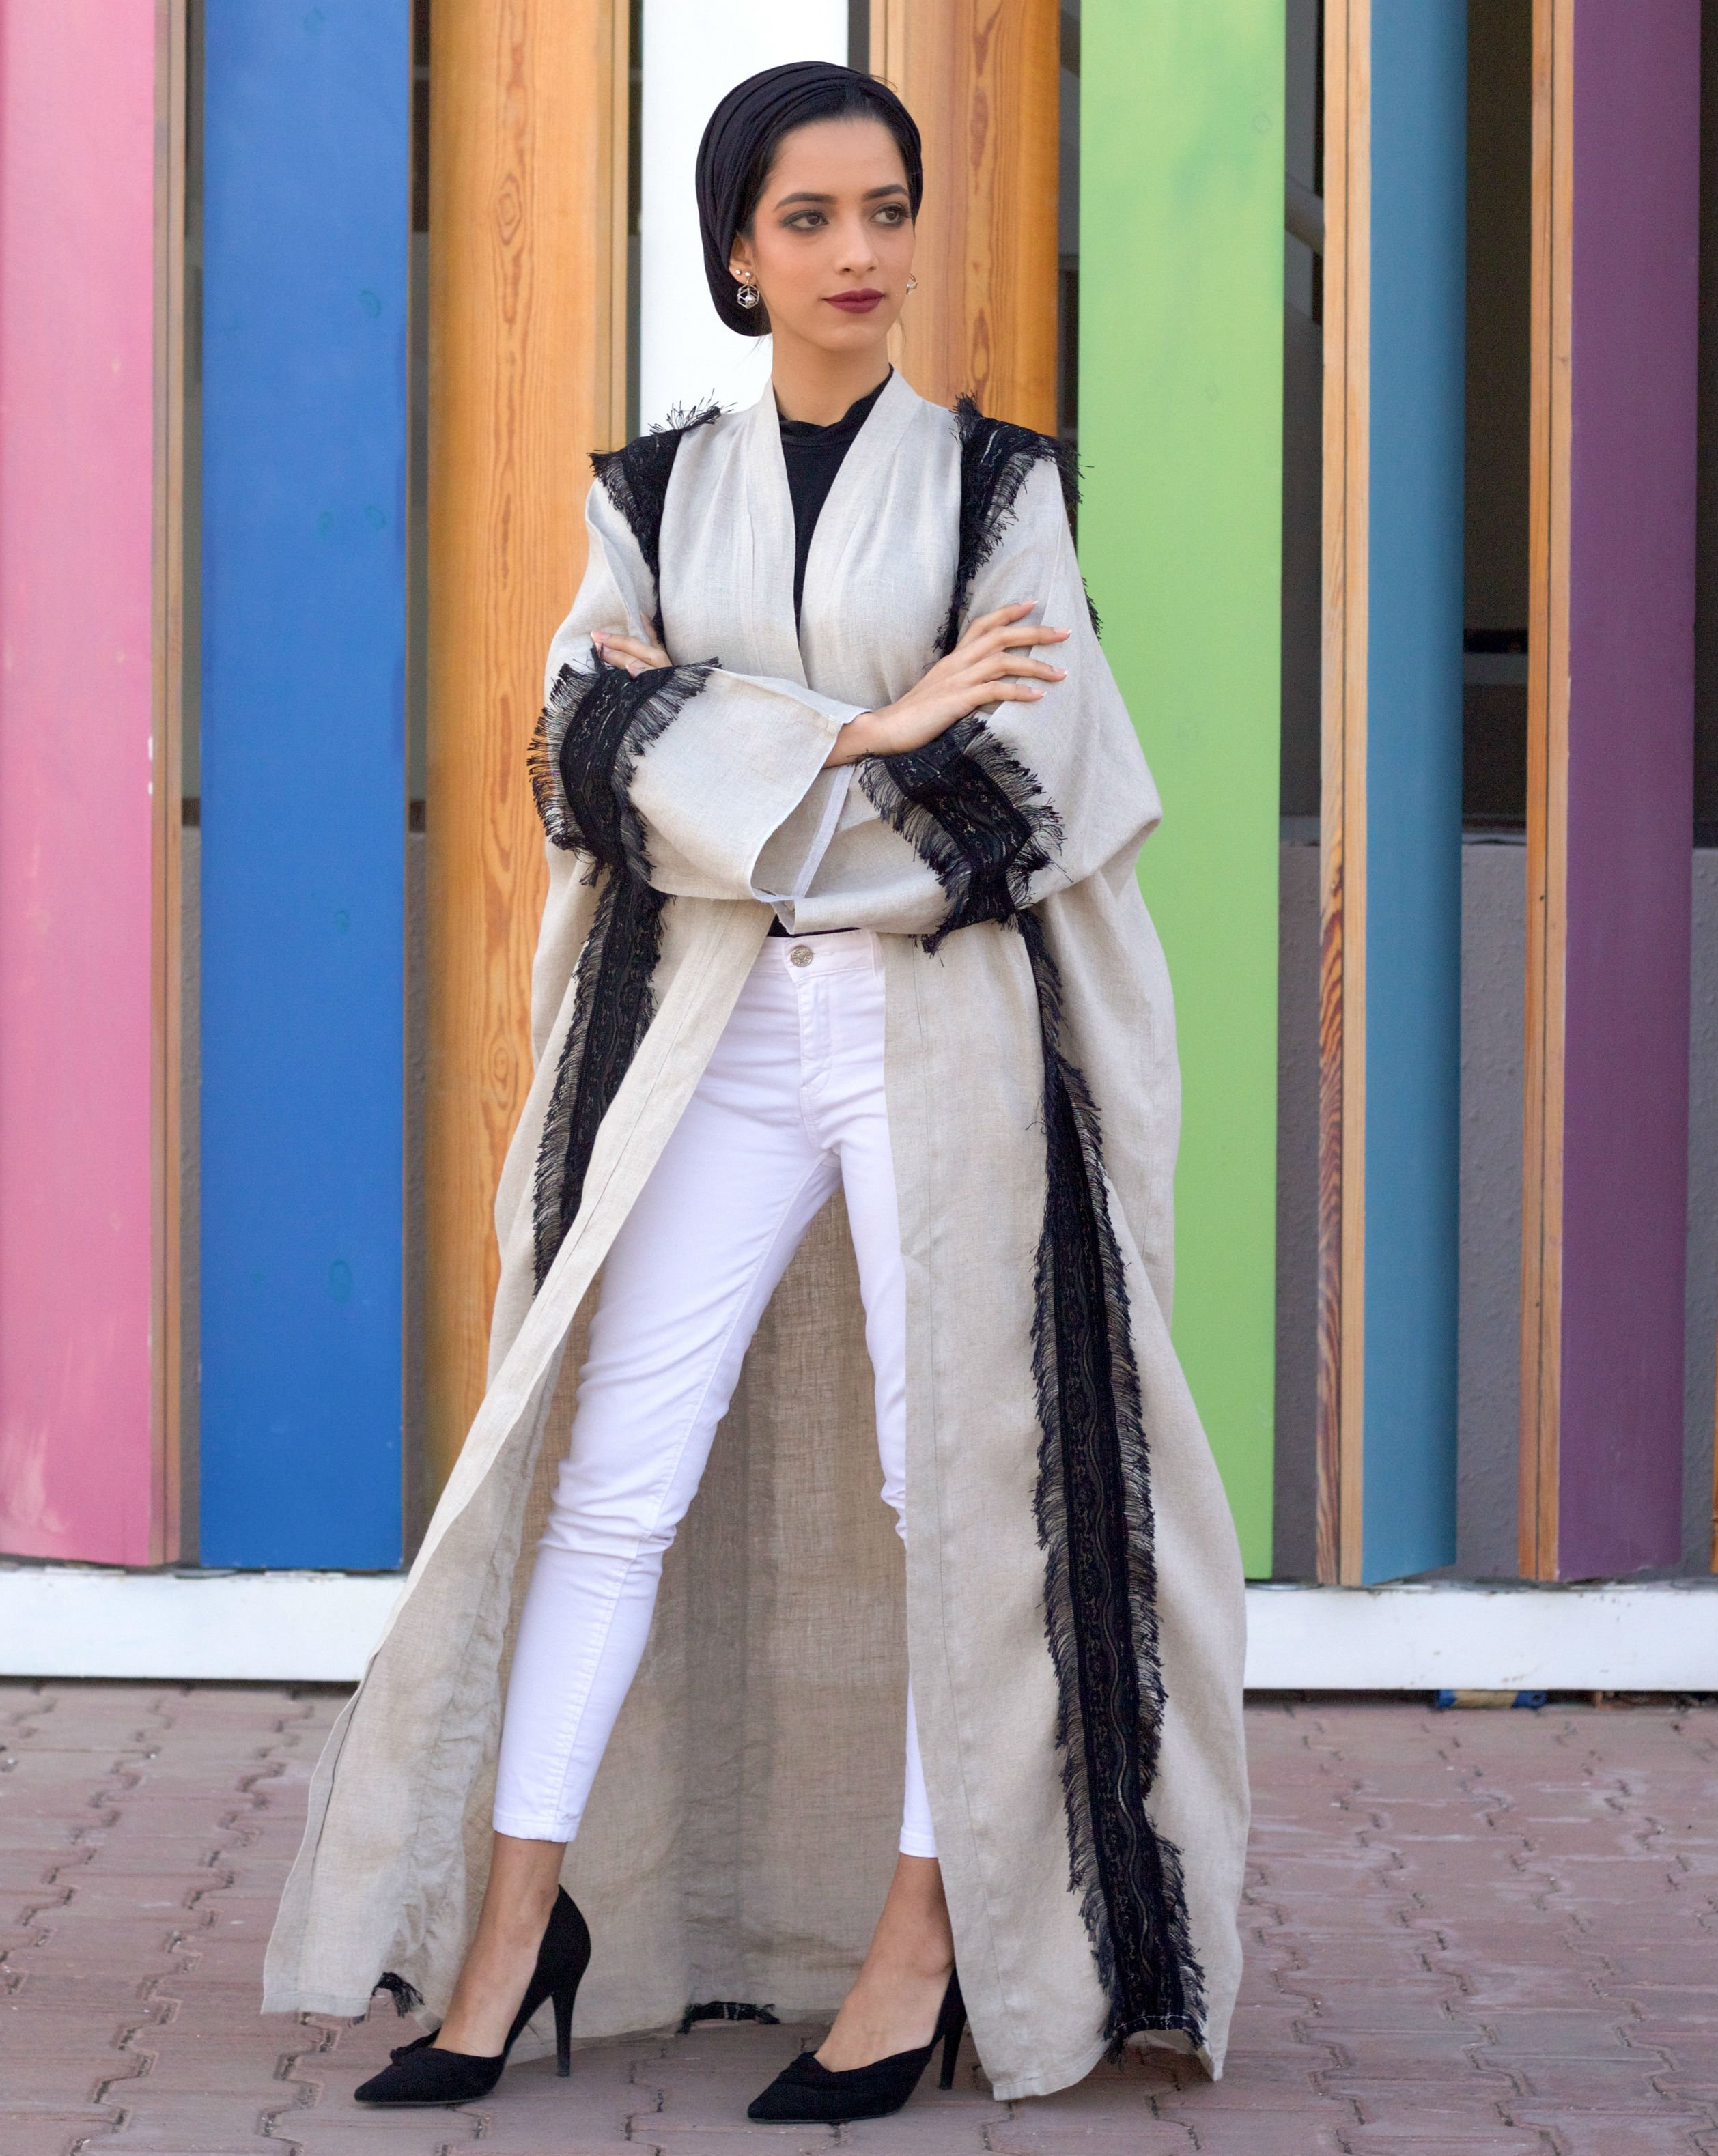 3f6fc4be In pictures: Yes, Saudi women dress like... this | Middle East Eye